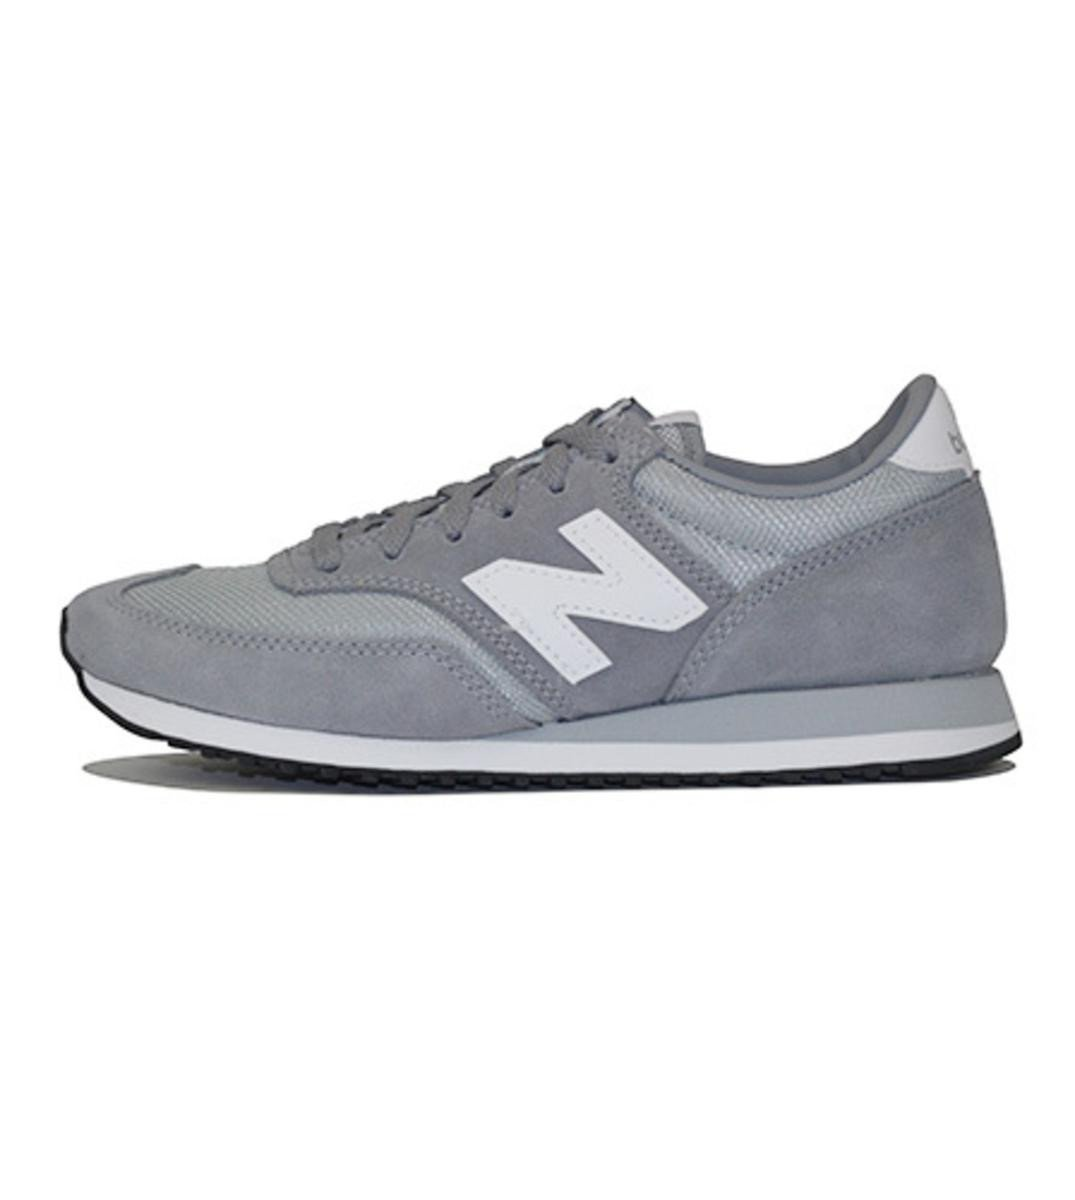 New Balance for Women: 620 Grey Sneakers